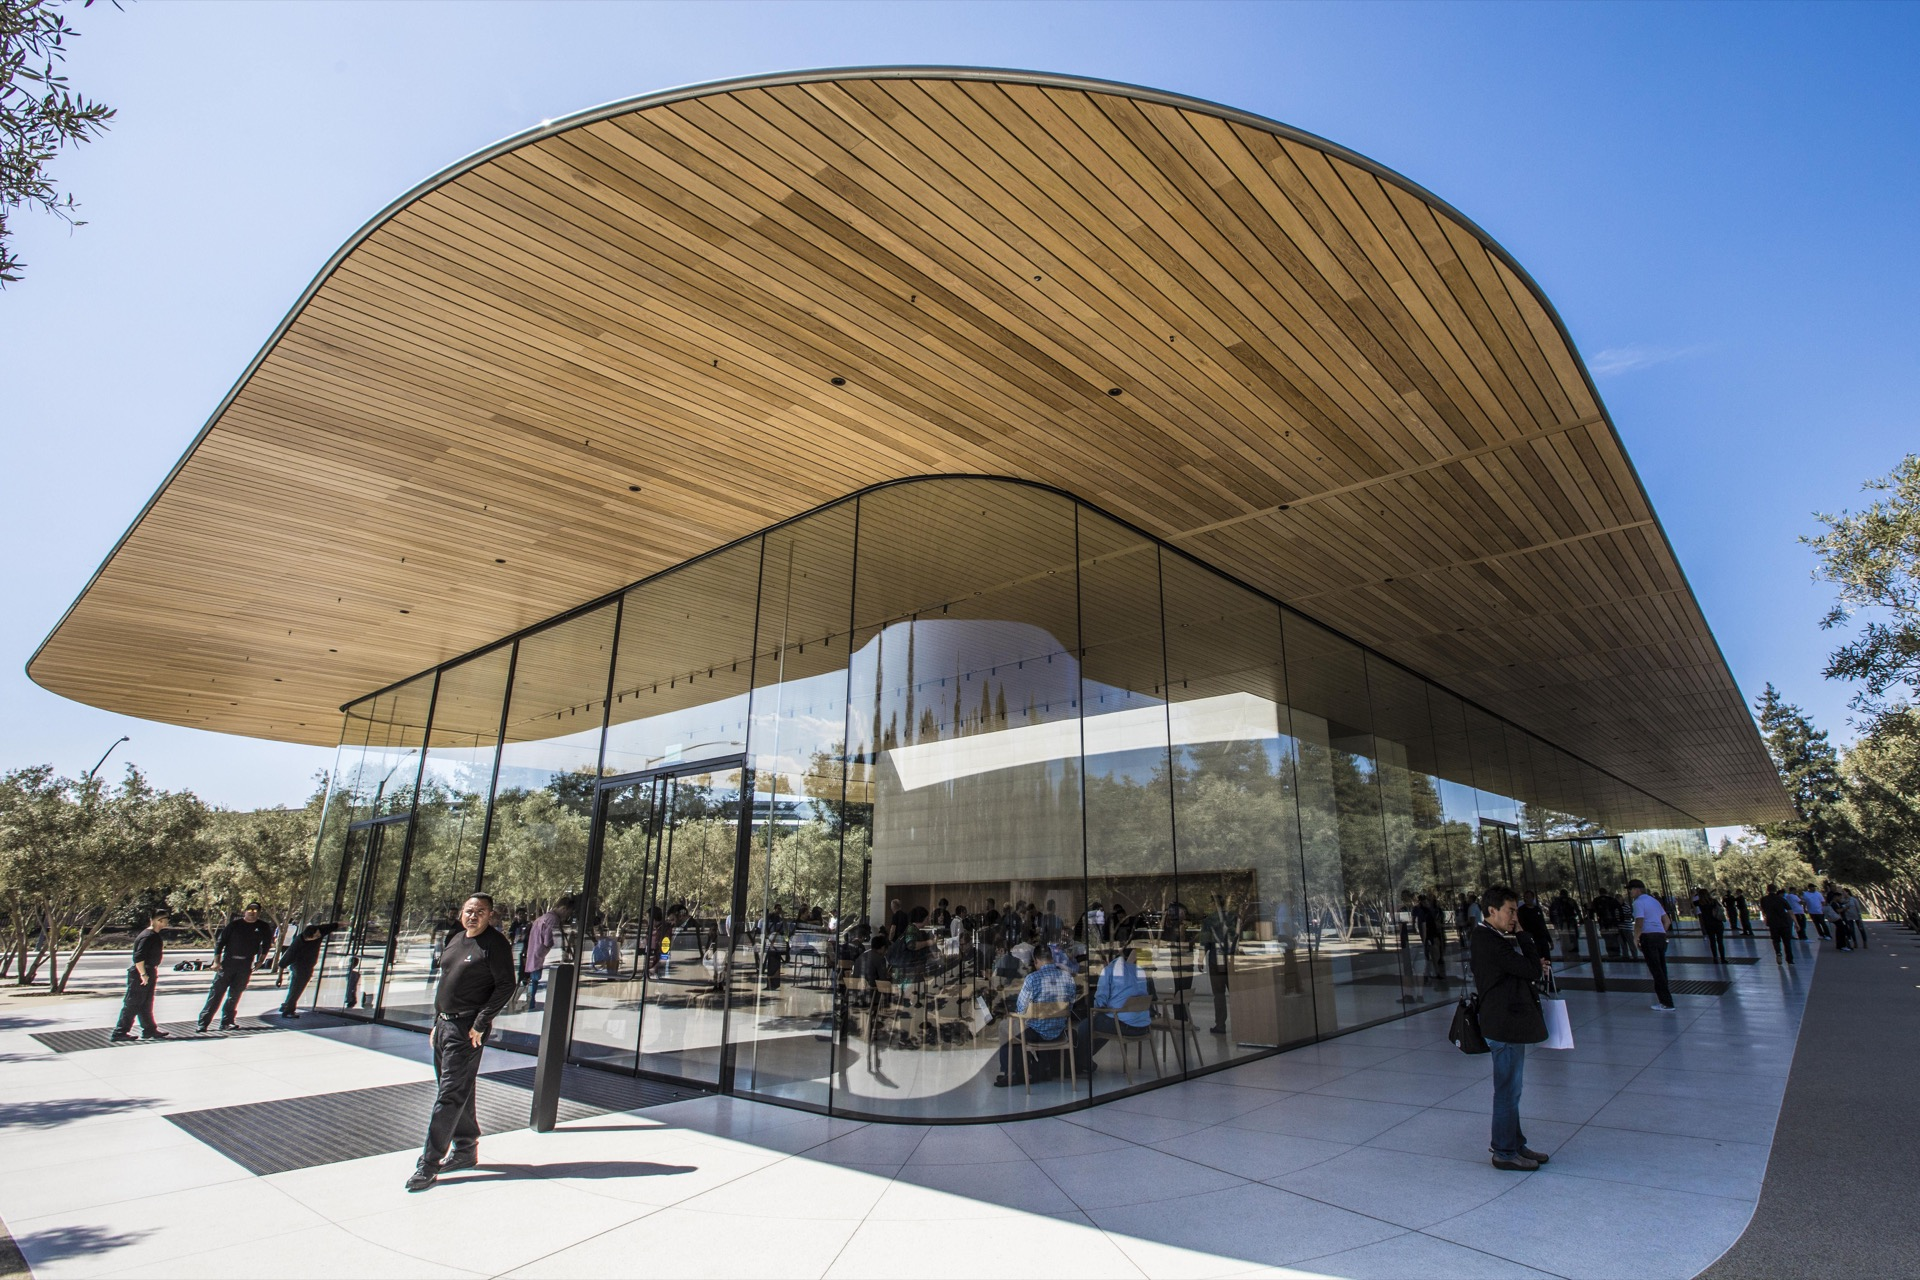 Apple Park Visitor Centre By Cnet